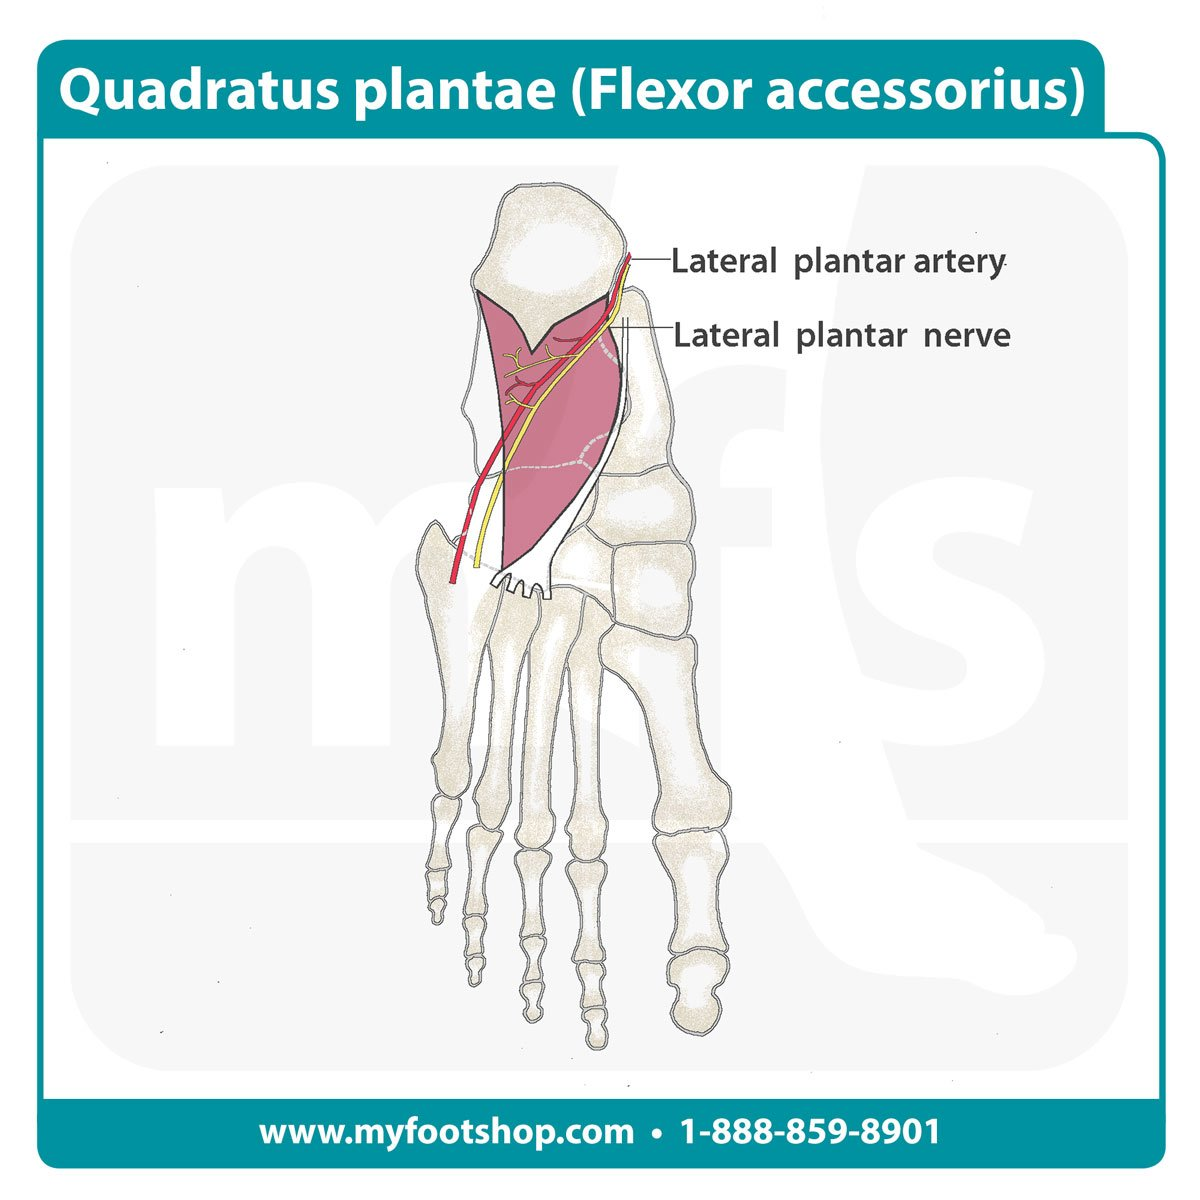 Image of the quadratus plantae muscle of the foot